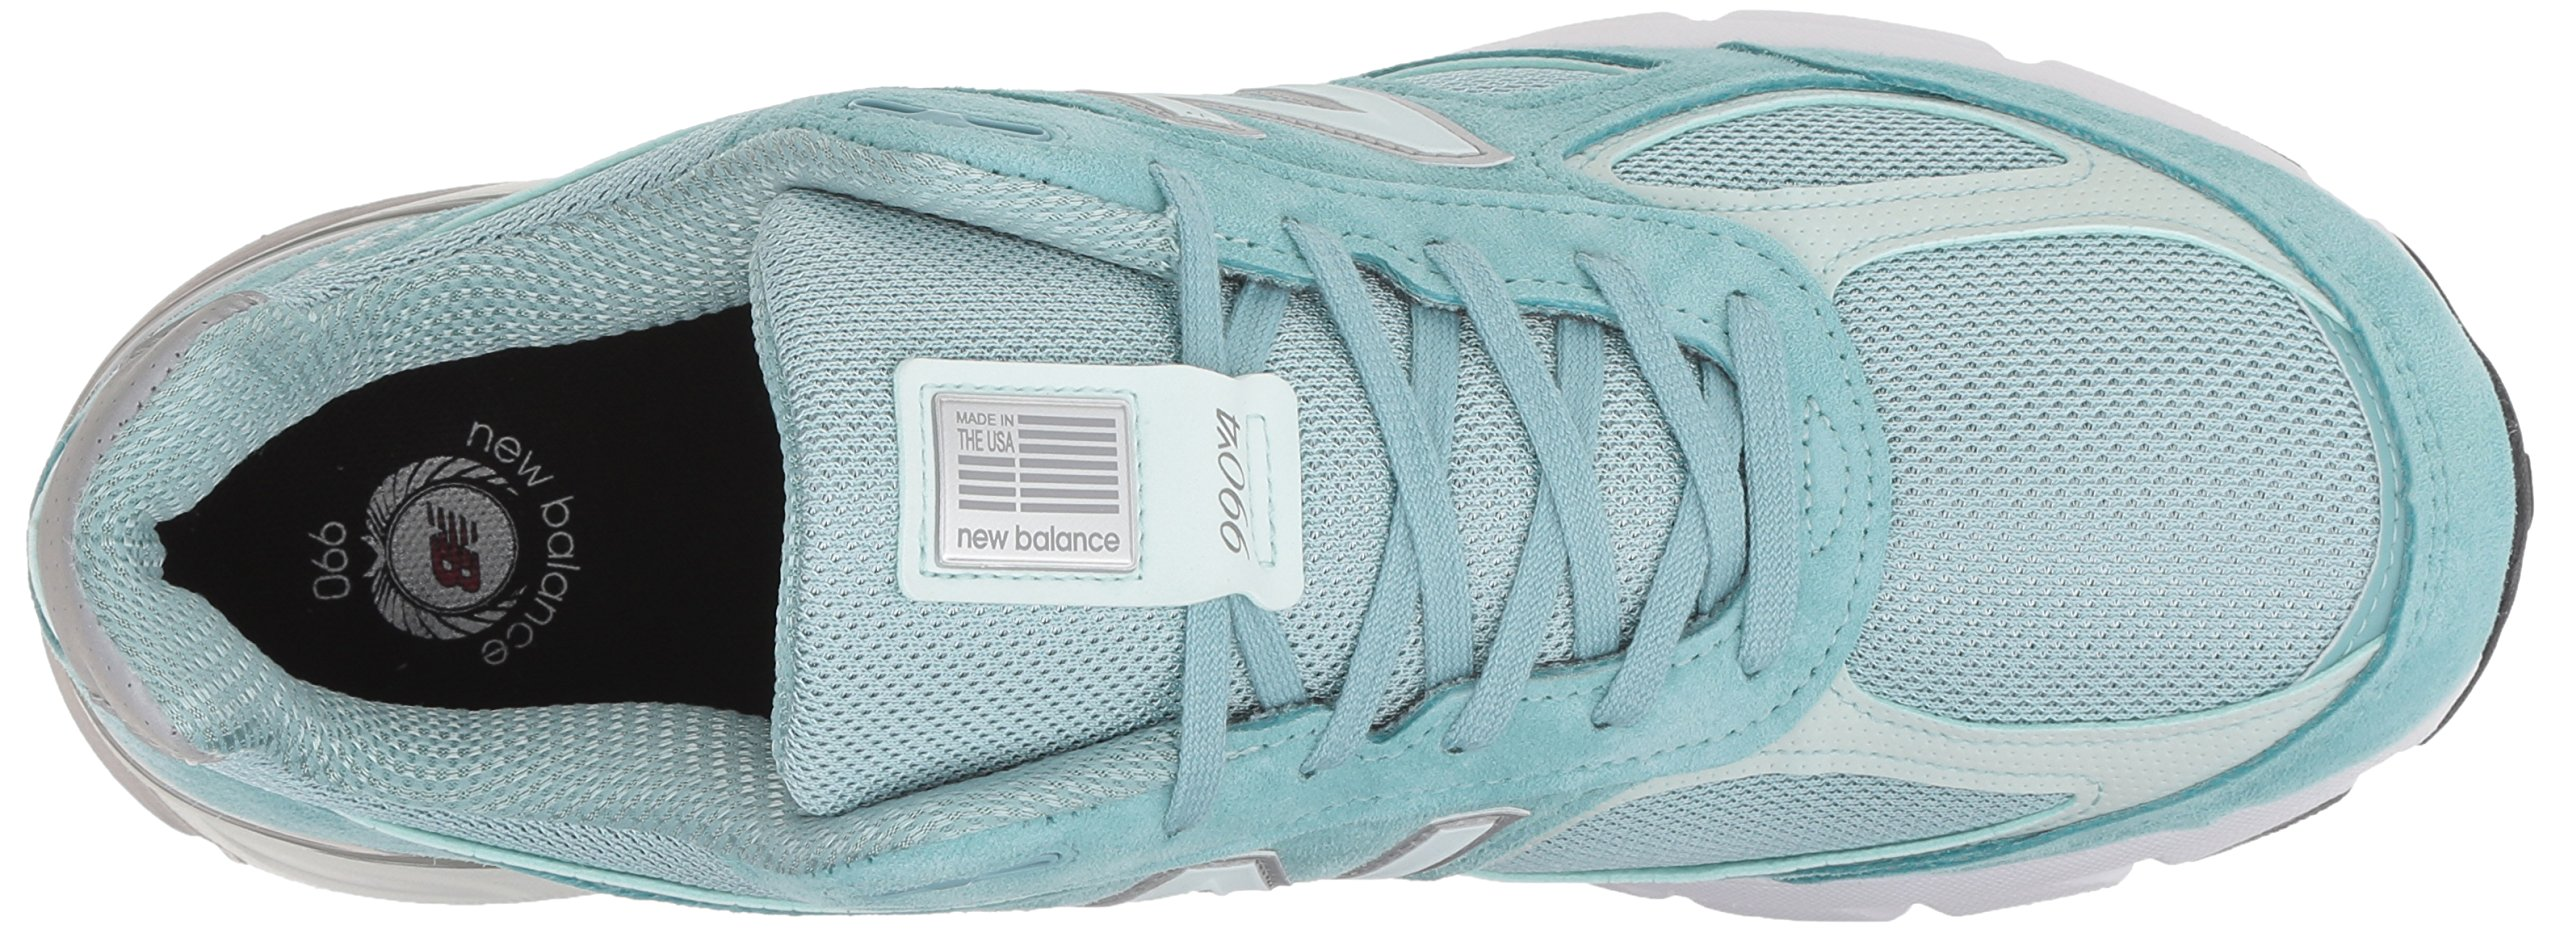 New Balance Men's 990v4, Green/White, 7 D US by New Balance (Image #8)